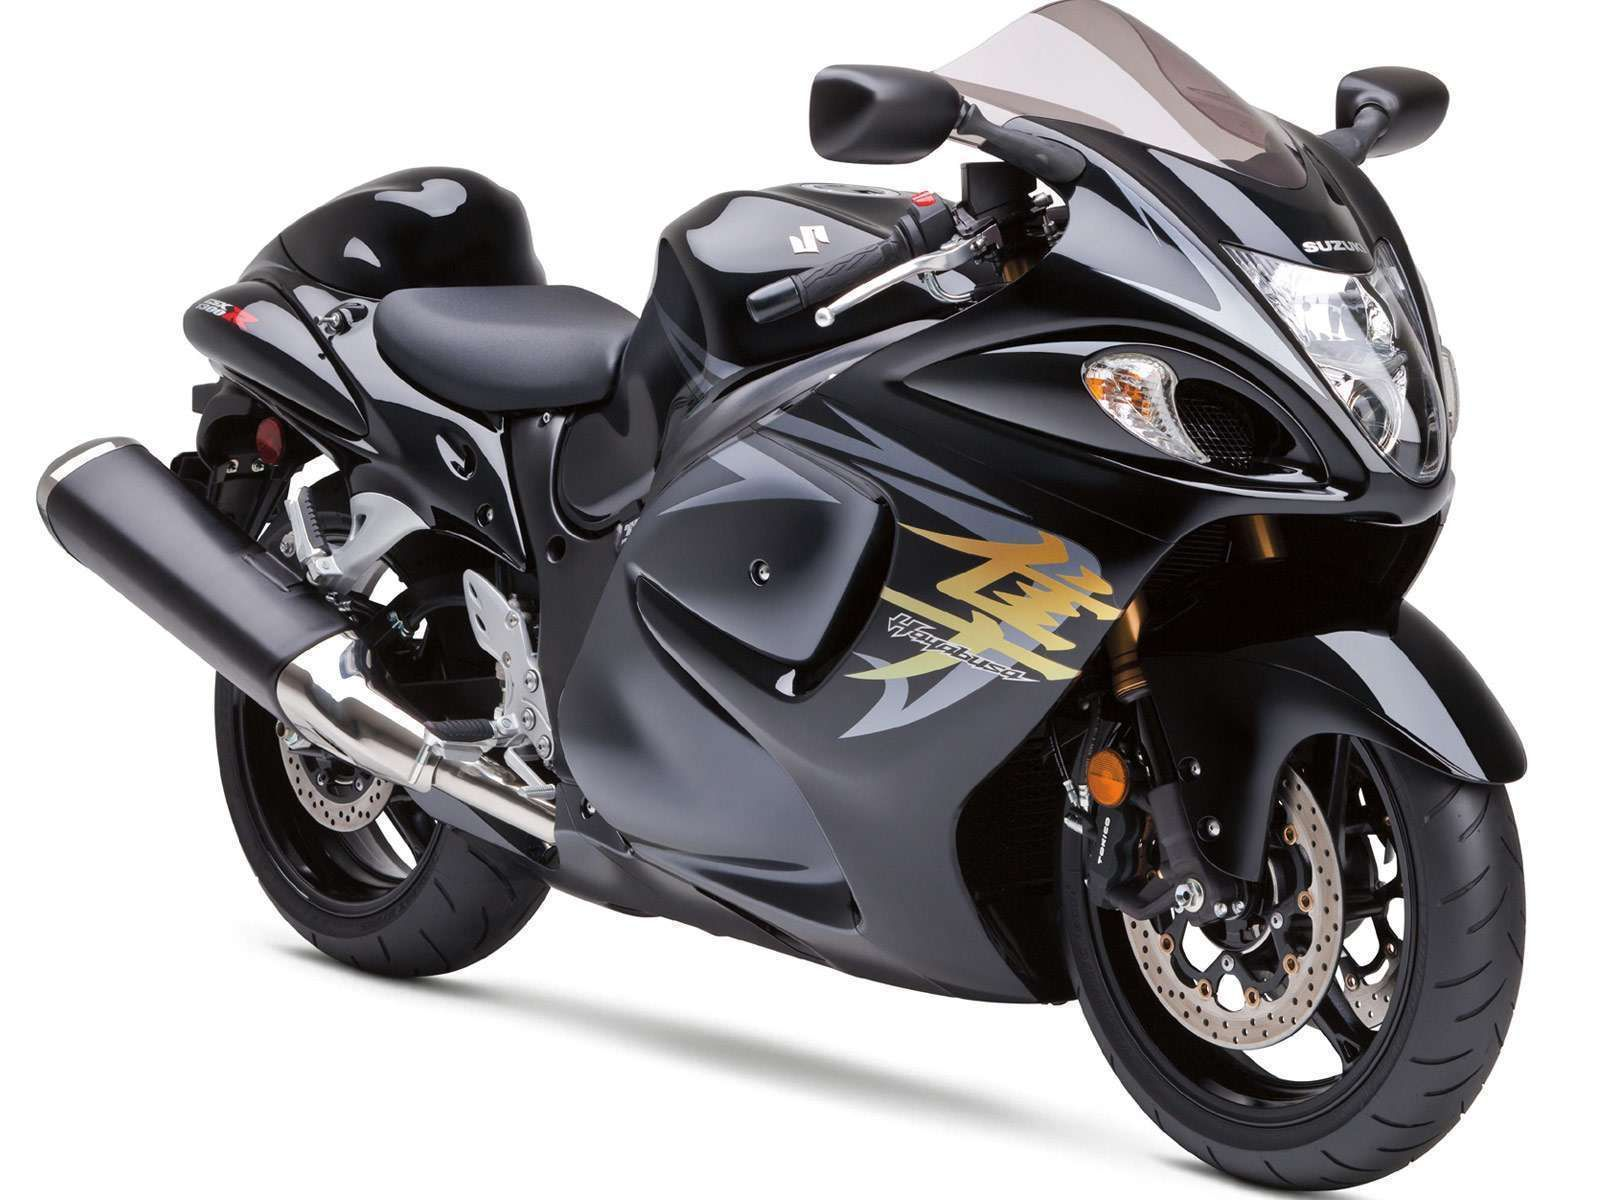 Click here to download in hd format 2009 suzuki hayabusa gsx 1300 r wallpapers